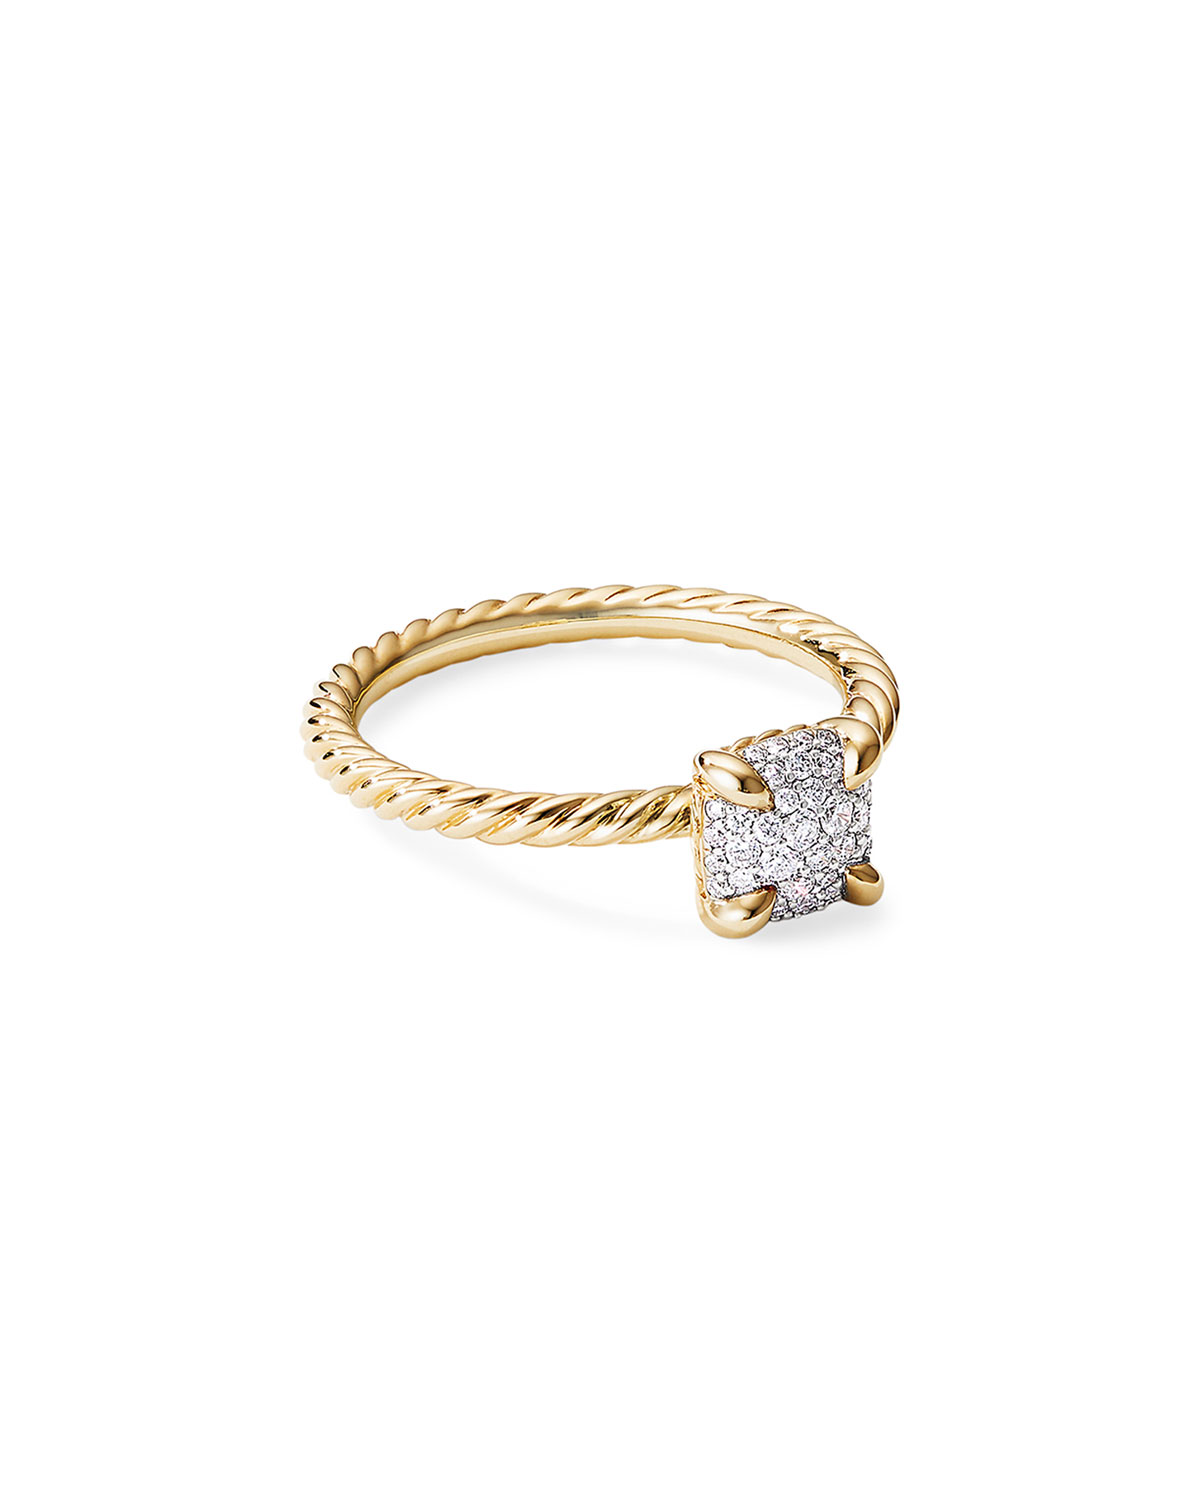 David Yurman Chatelaine Ring in 18K Yellow Gold with Full Pave Diamonds, Size 8